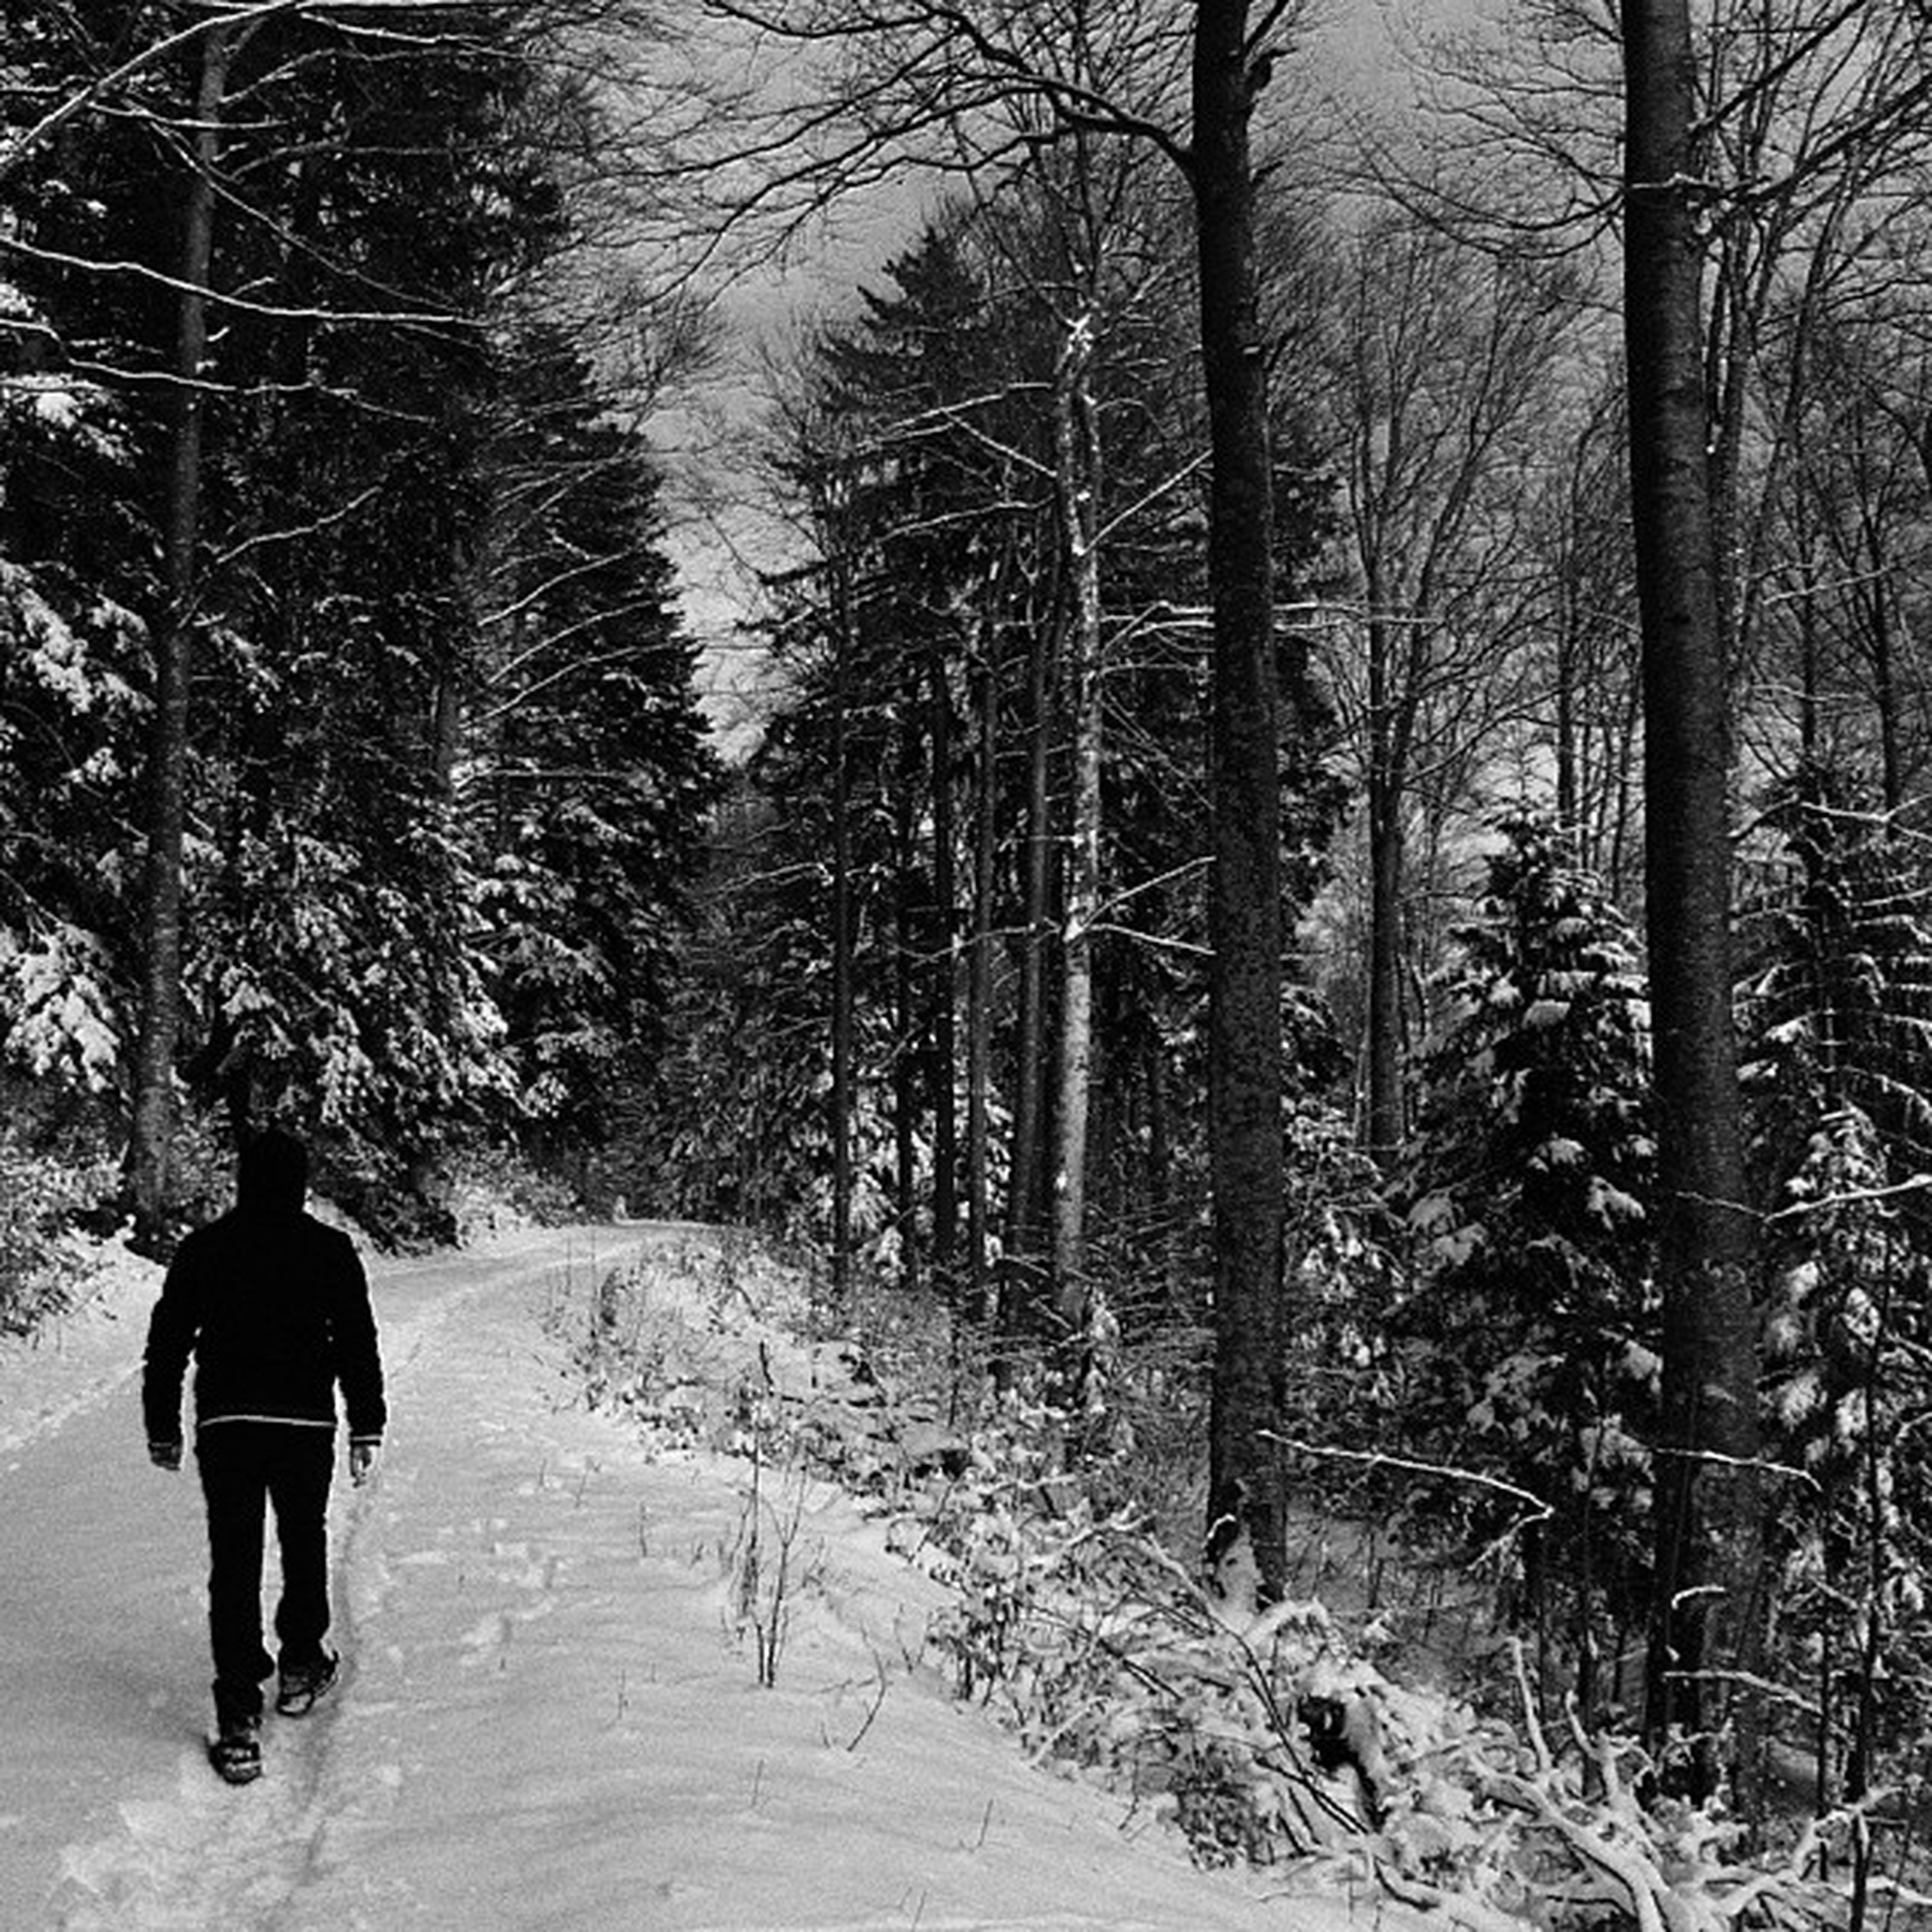 tree, rear view, walking, full length, lifestyles, leisure activity, winter, men, forest, cold temperature, snow, season, bare tree, nature, tranquility, tree trunk, tranquil scene, the way forward